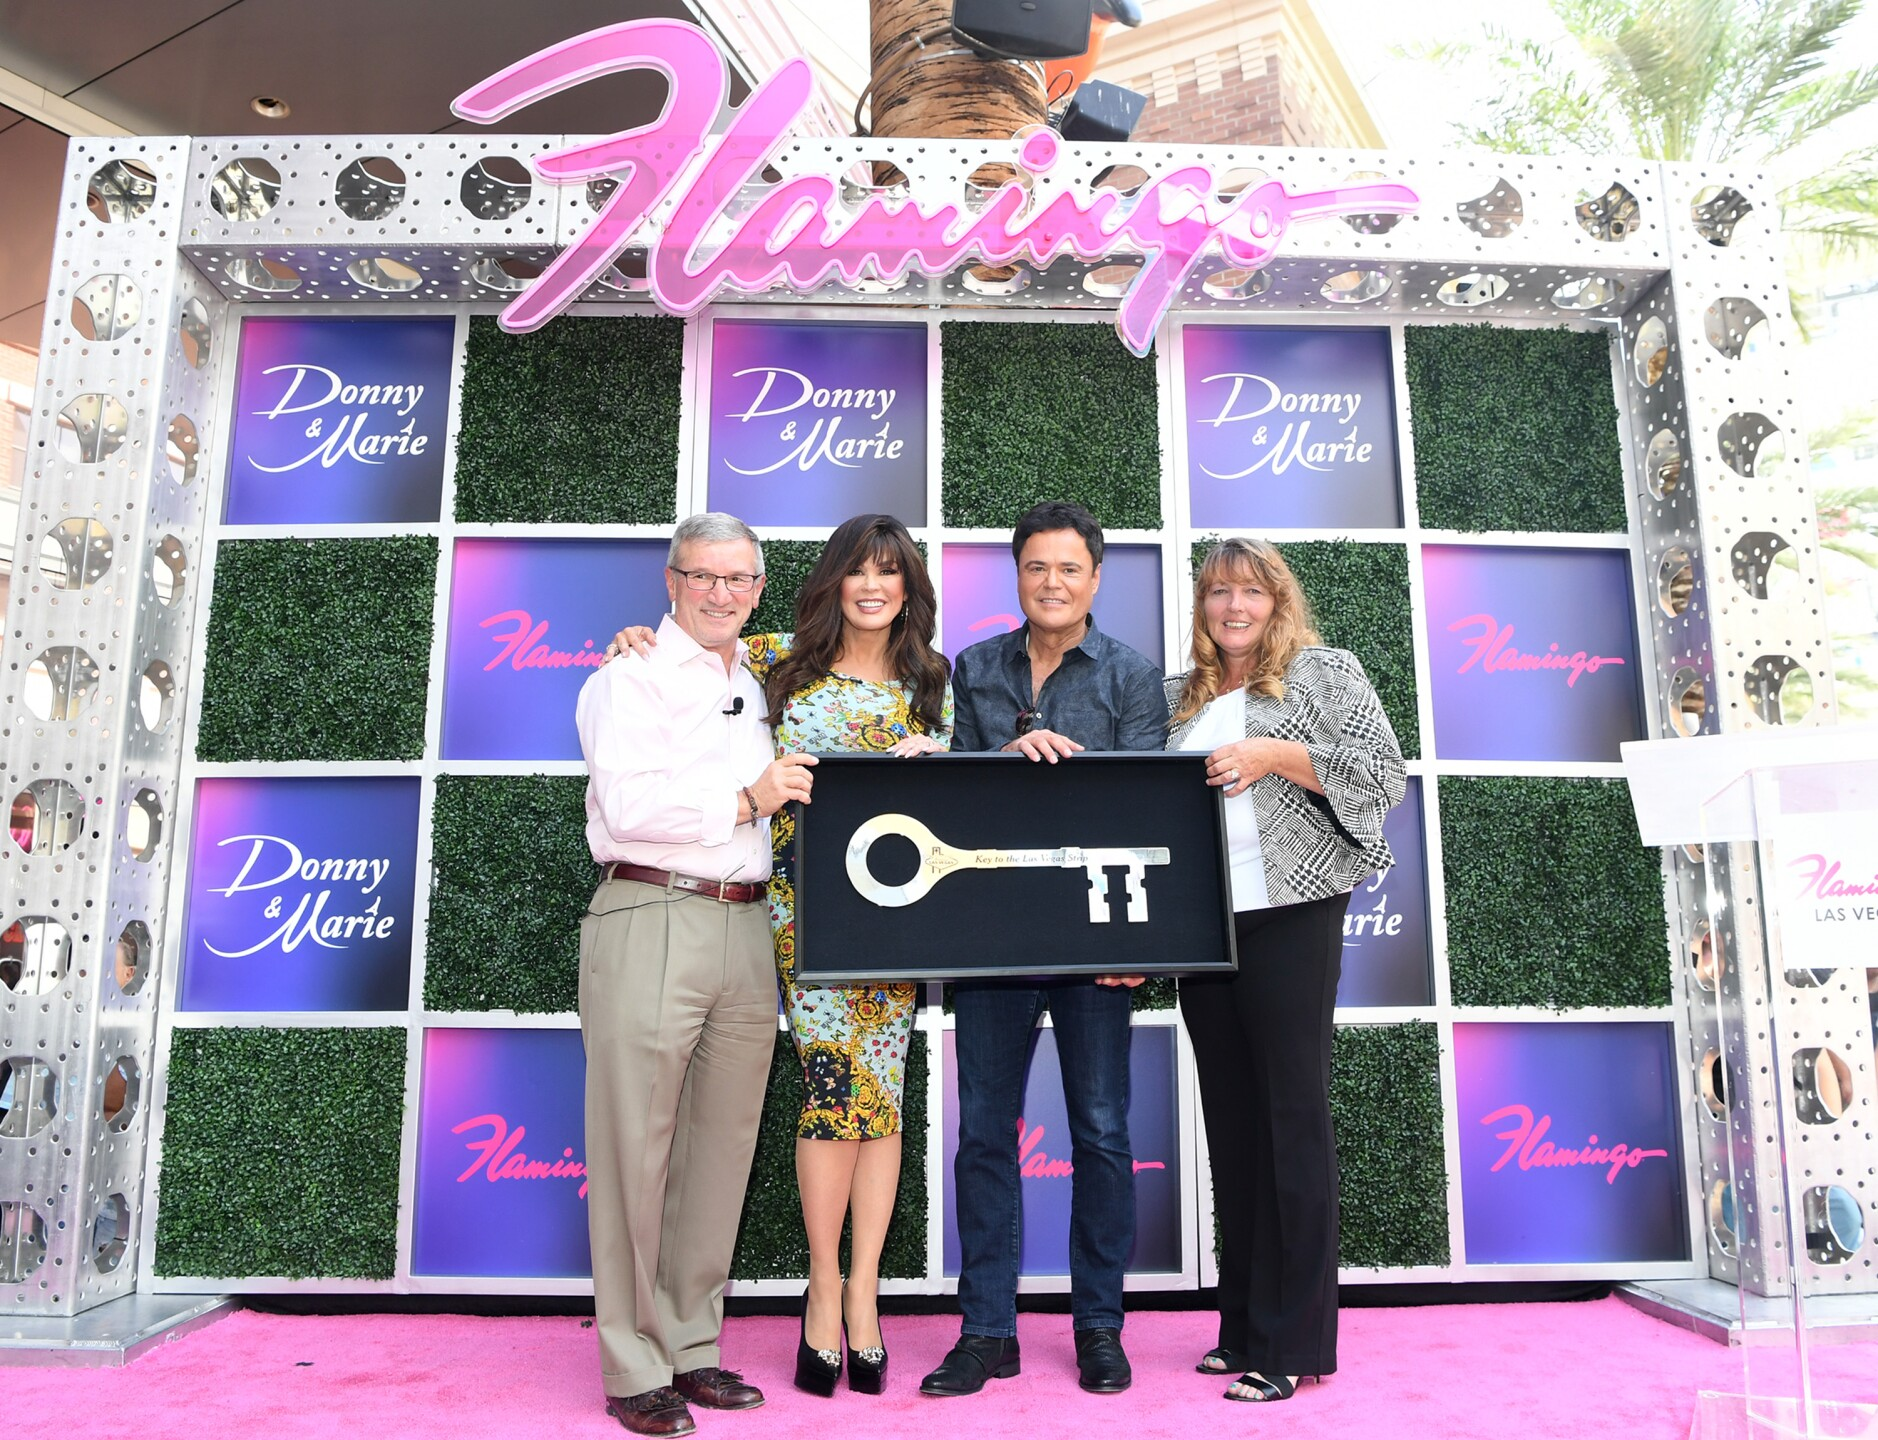 (L-R) Caesars Entertainment CEO Tony Rodio, Donny & Marie, Clark County Commission Chairwoman Marilyn Kirkpatrick; Key to the Las Vegas Strip at Flamingo Las Vegas_6.JPG